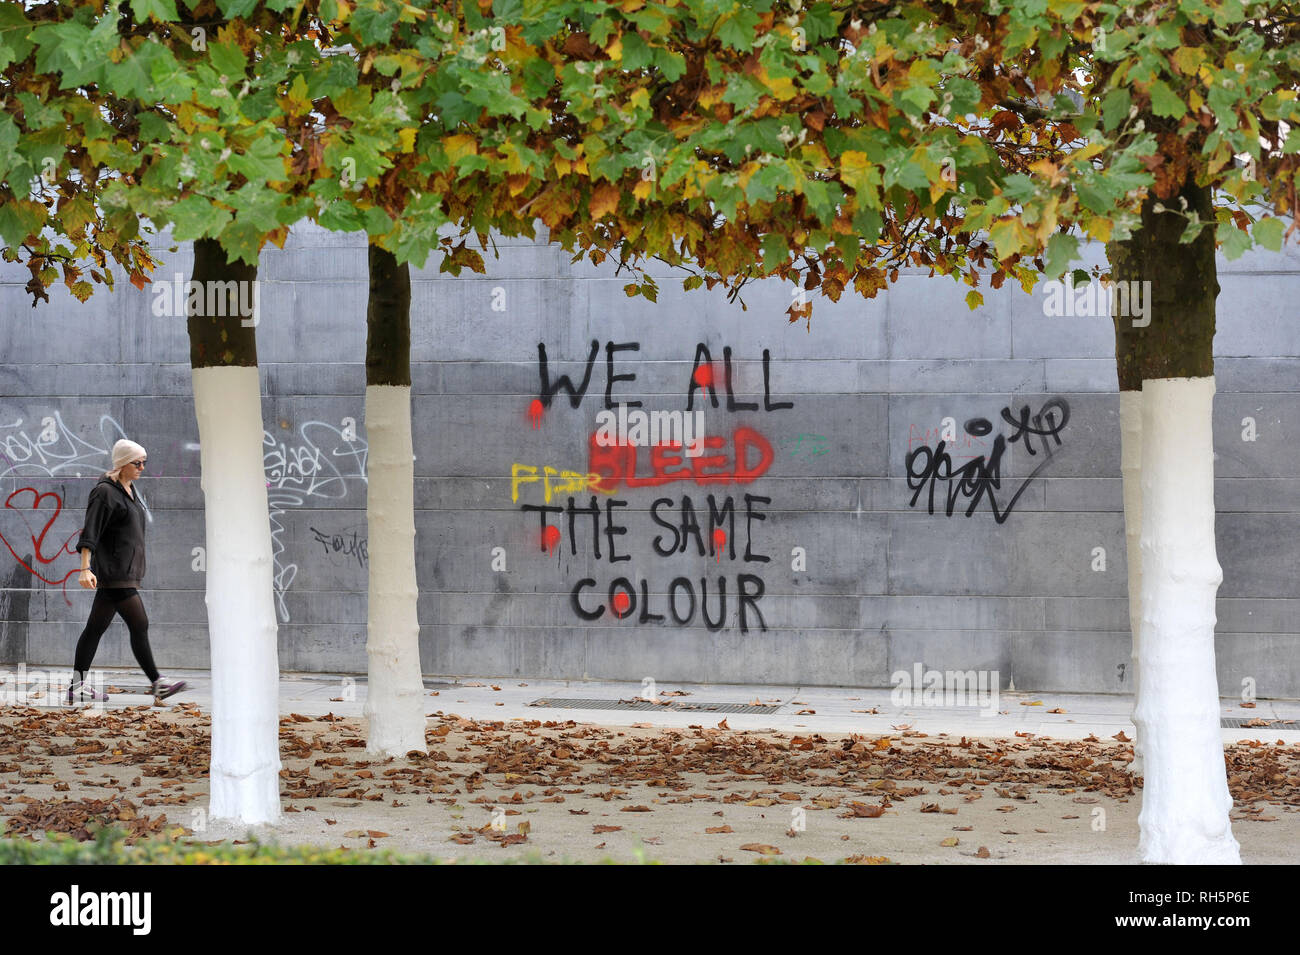 Graffiti on a wall in Brussels, Europe which reads 'We all bleed the same colour' - Stock Image